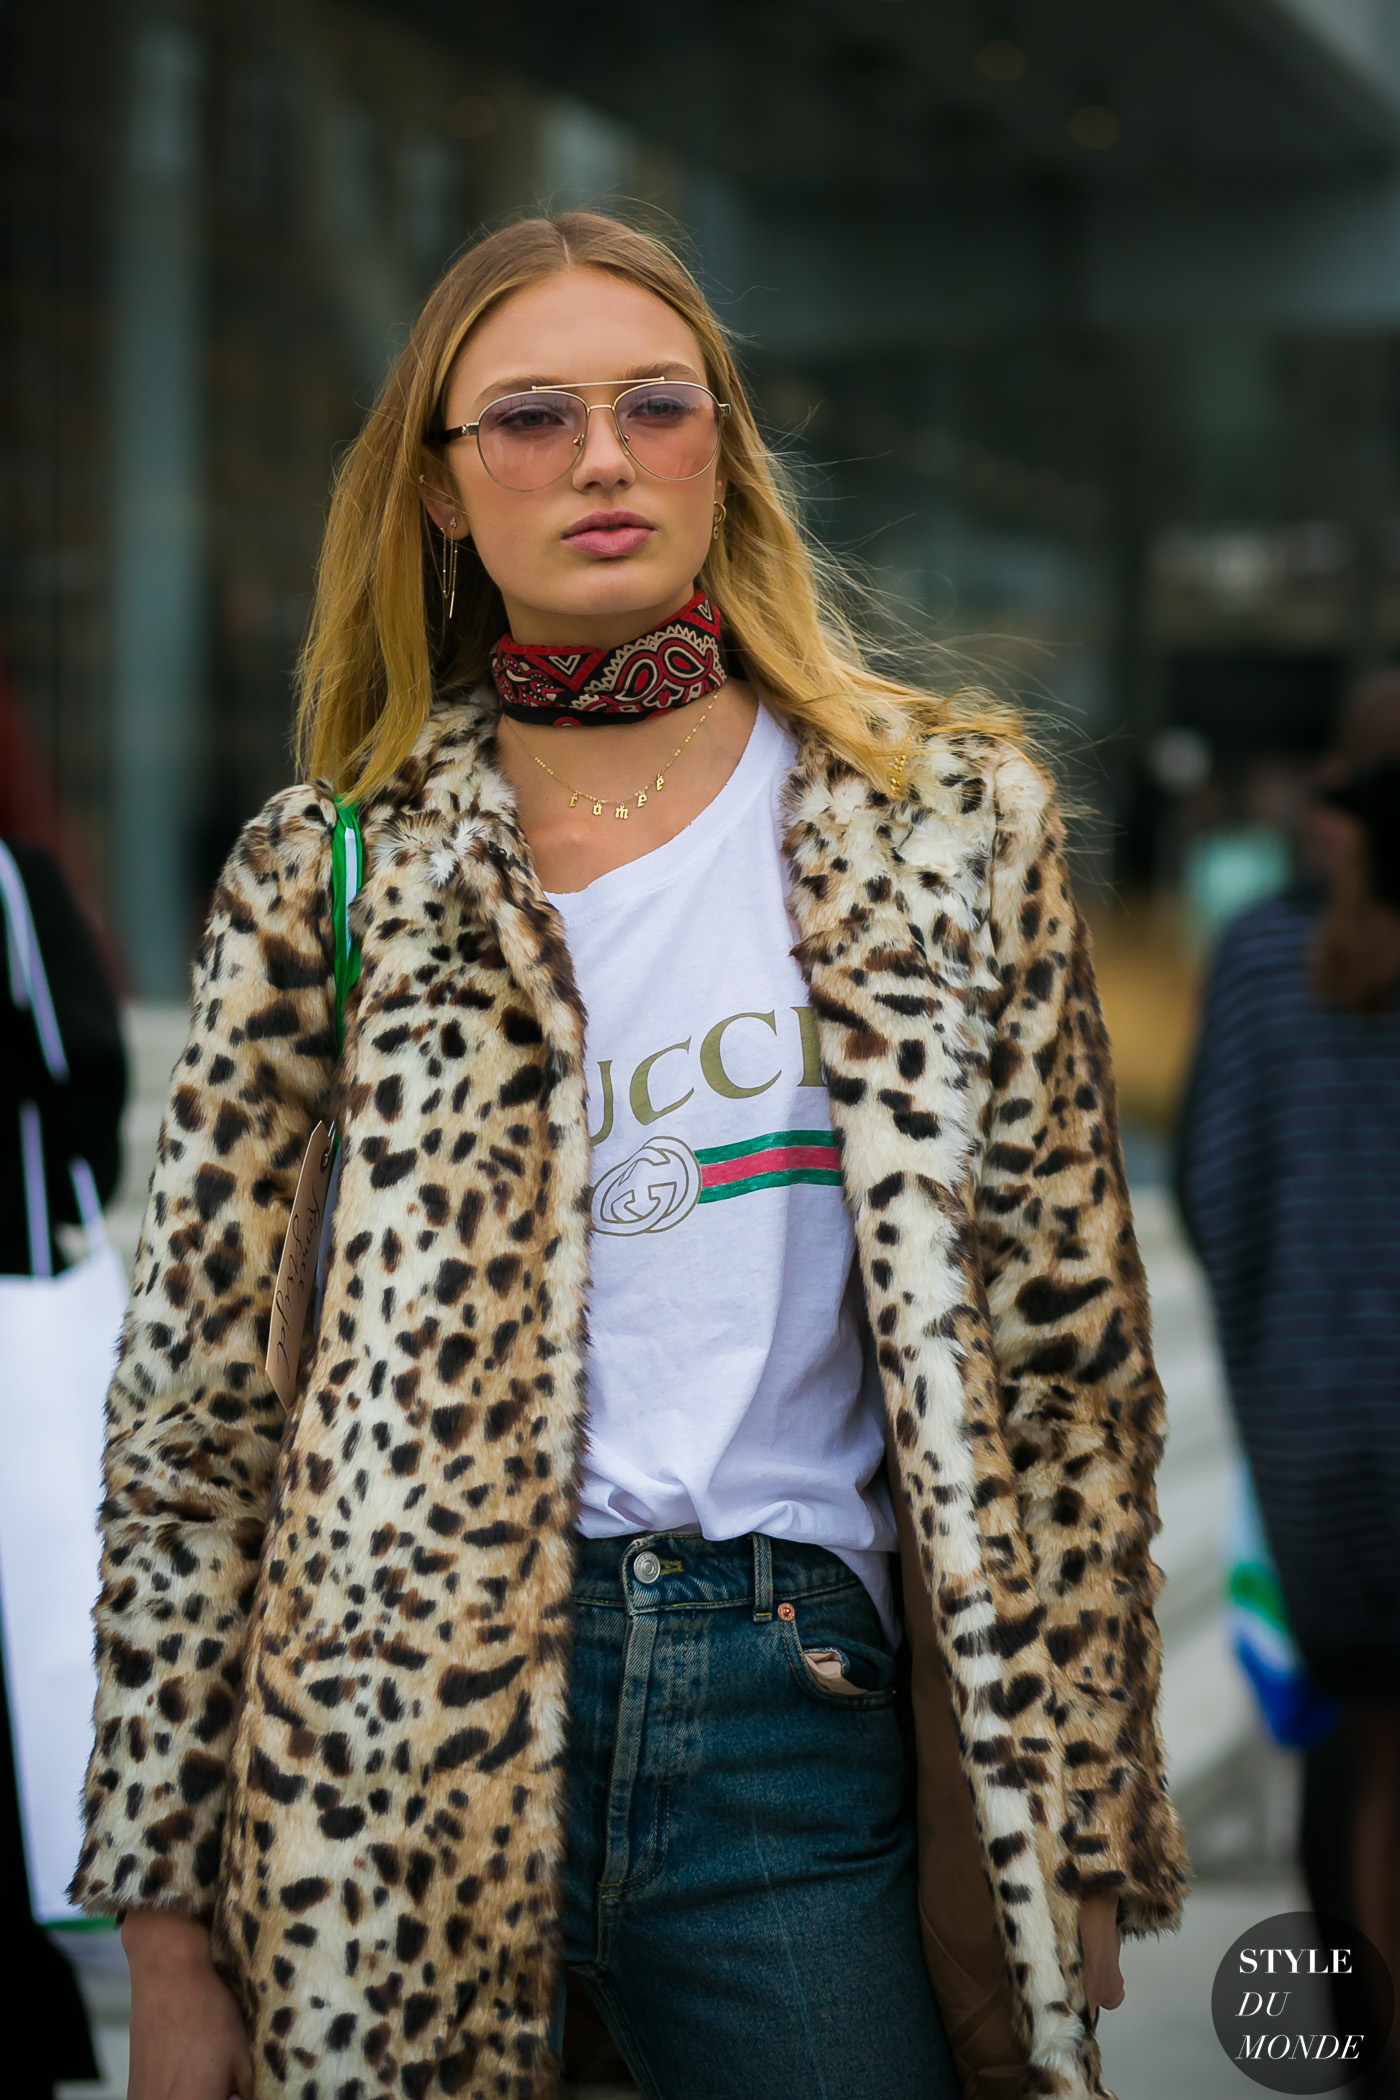 Romee-Strijd-by-STYLEDUMONDE-Street-Style-Fashion-Photography0E2A7924